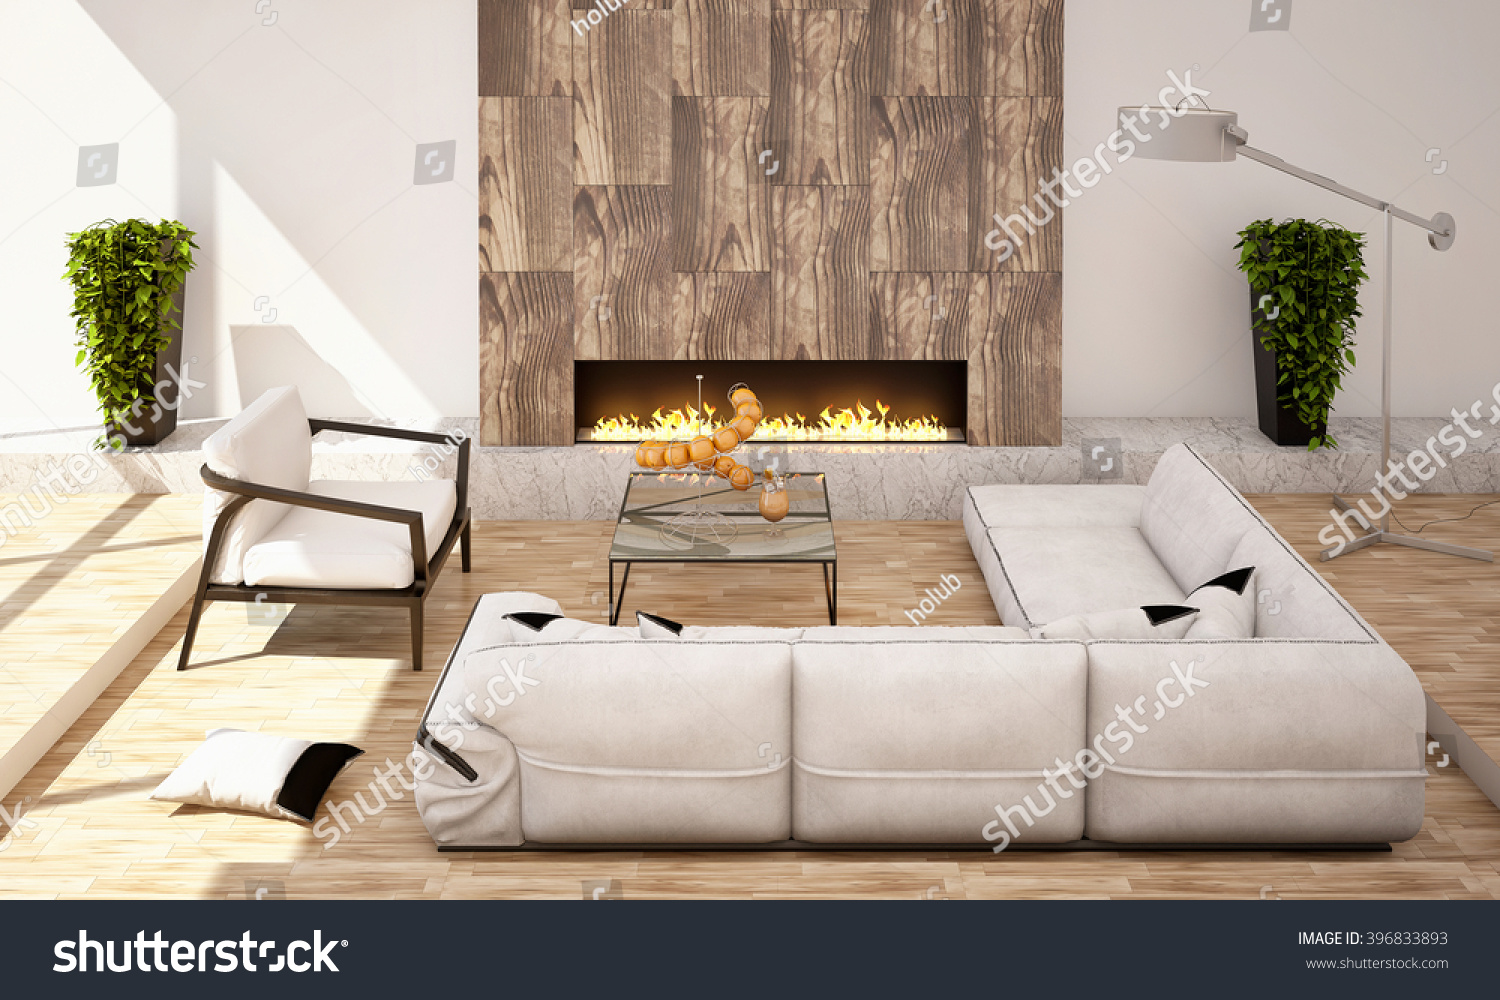 living room fireplace big sofa armchair stock illustration. Black Bedroom Furniture Sets. Home Design Ideas